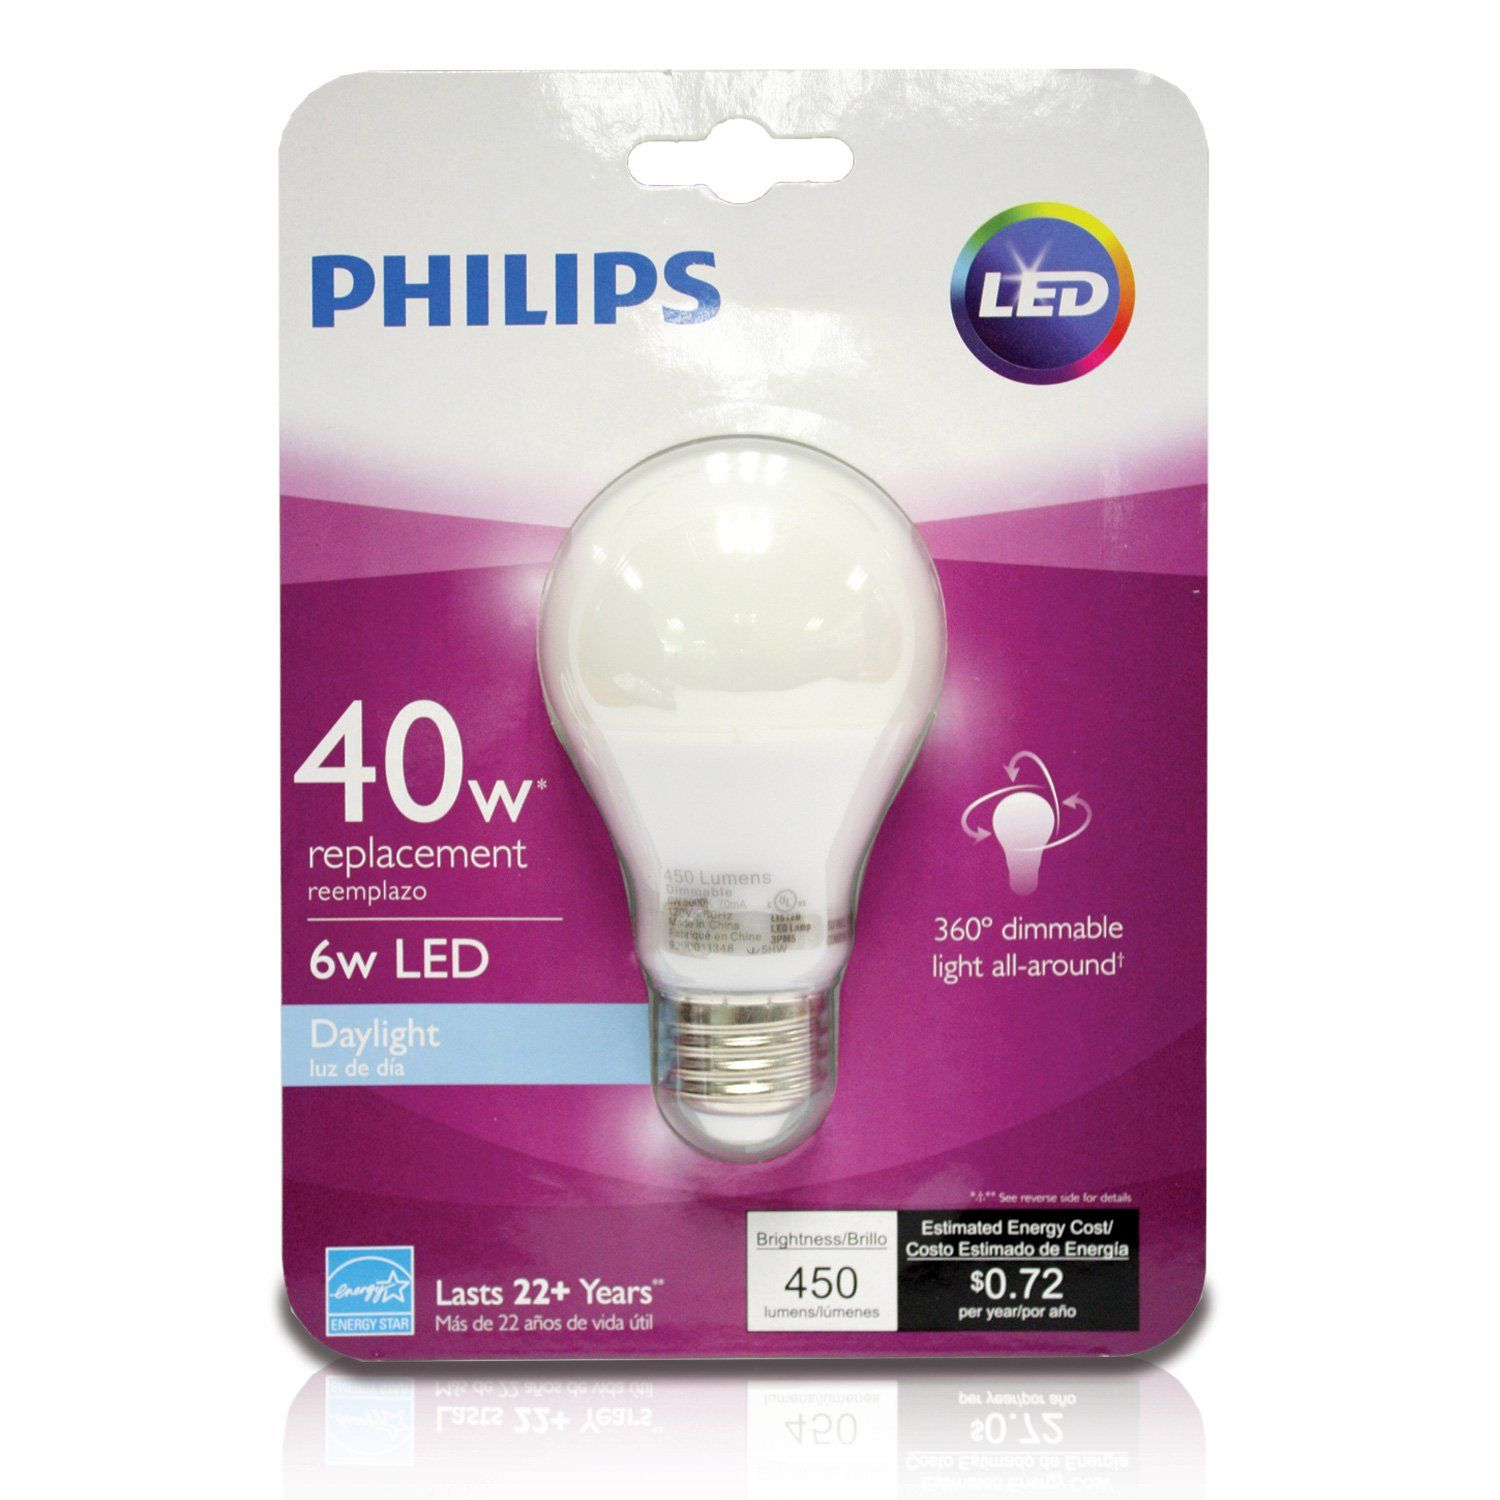 Philips 455741 6 5 Watt Led Bulb Learn More At The Picture Web Link This Is An Affiliate Link Lightbulb Led Bulb Light Bulb Bulb